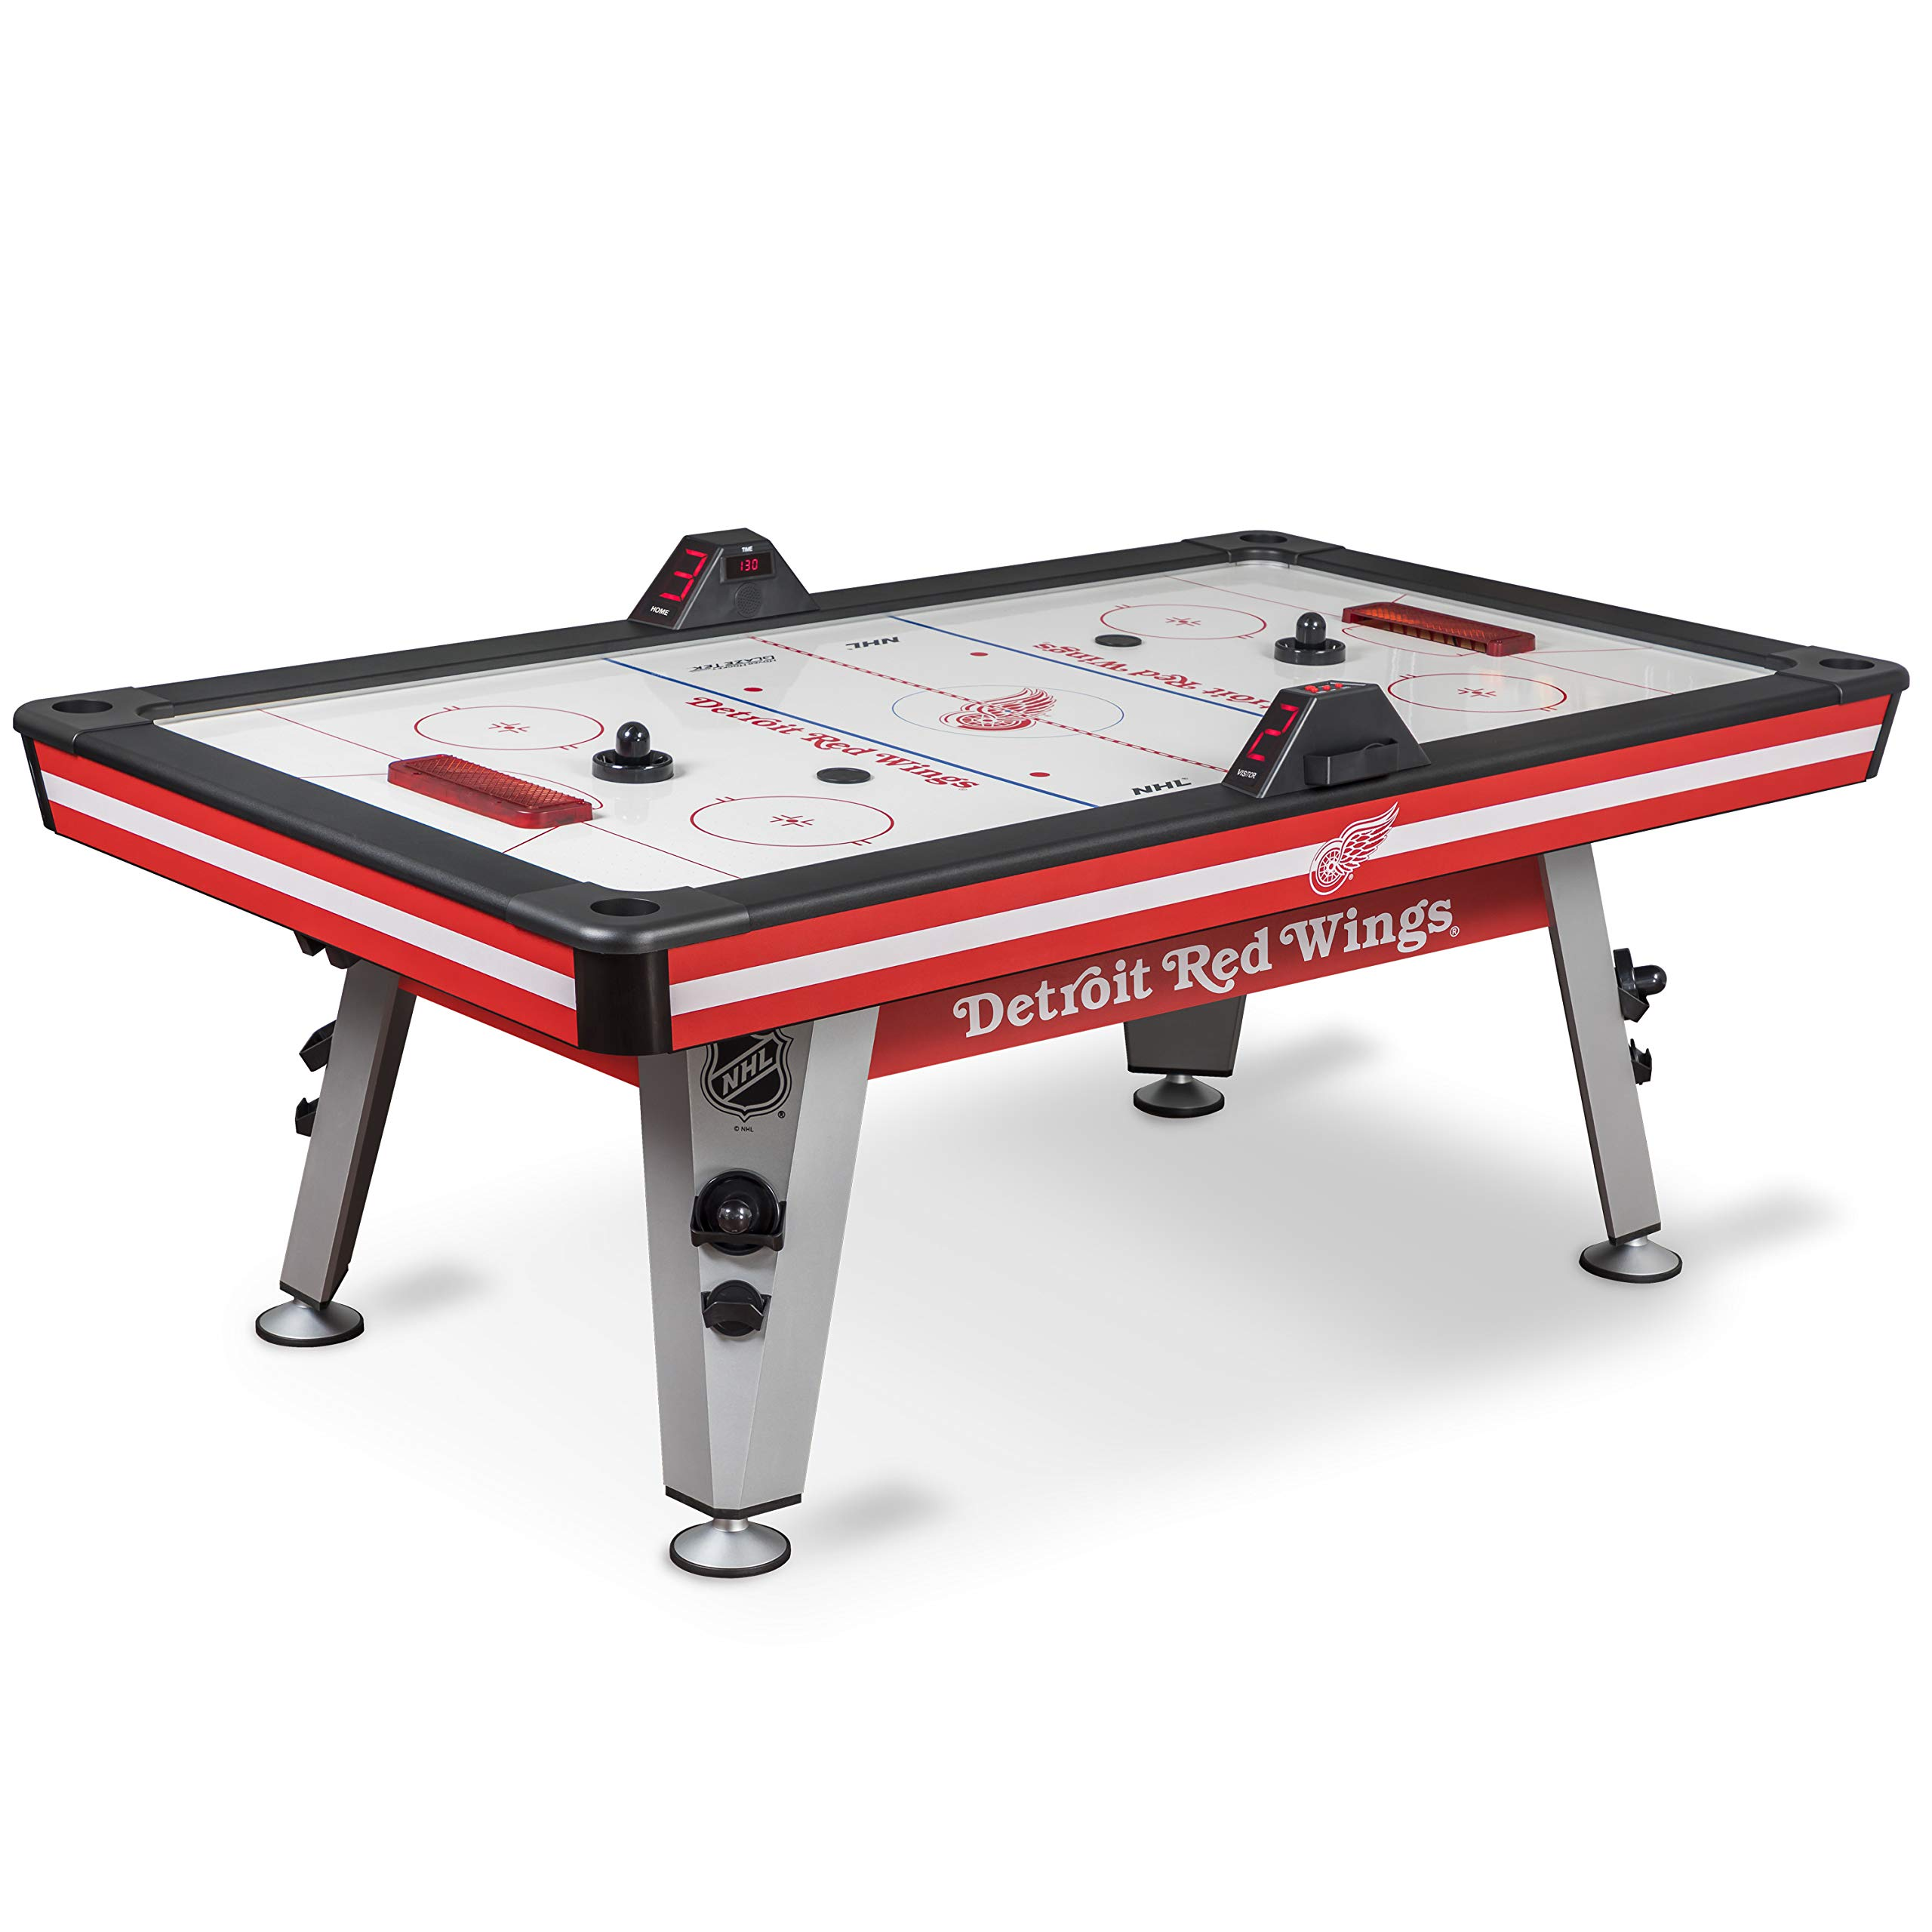 NHL Air Powered Hockey Table - Detroit Red Wings - 84 Inch-  Features Scratch Resistant Material, Automatic Scoring, and Built-In Accessory Storage by NHL